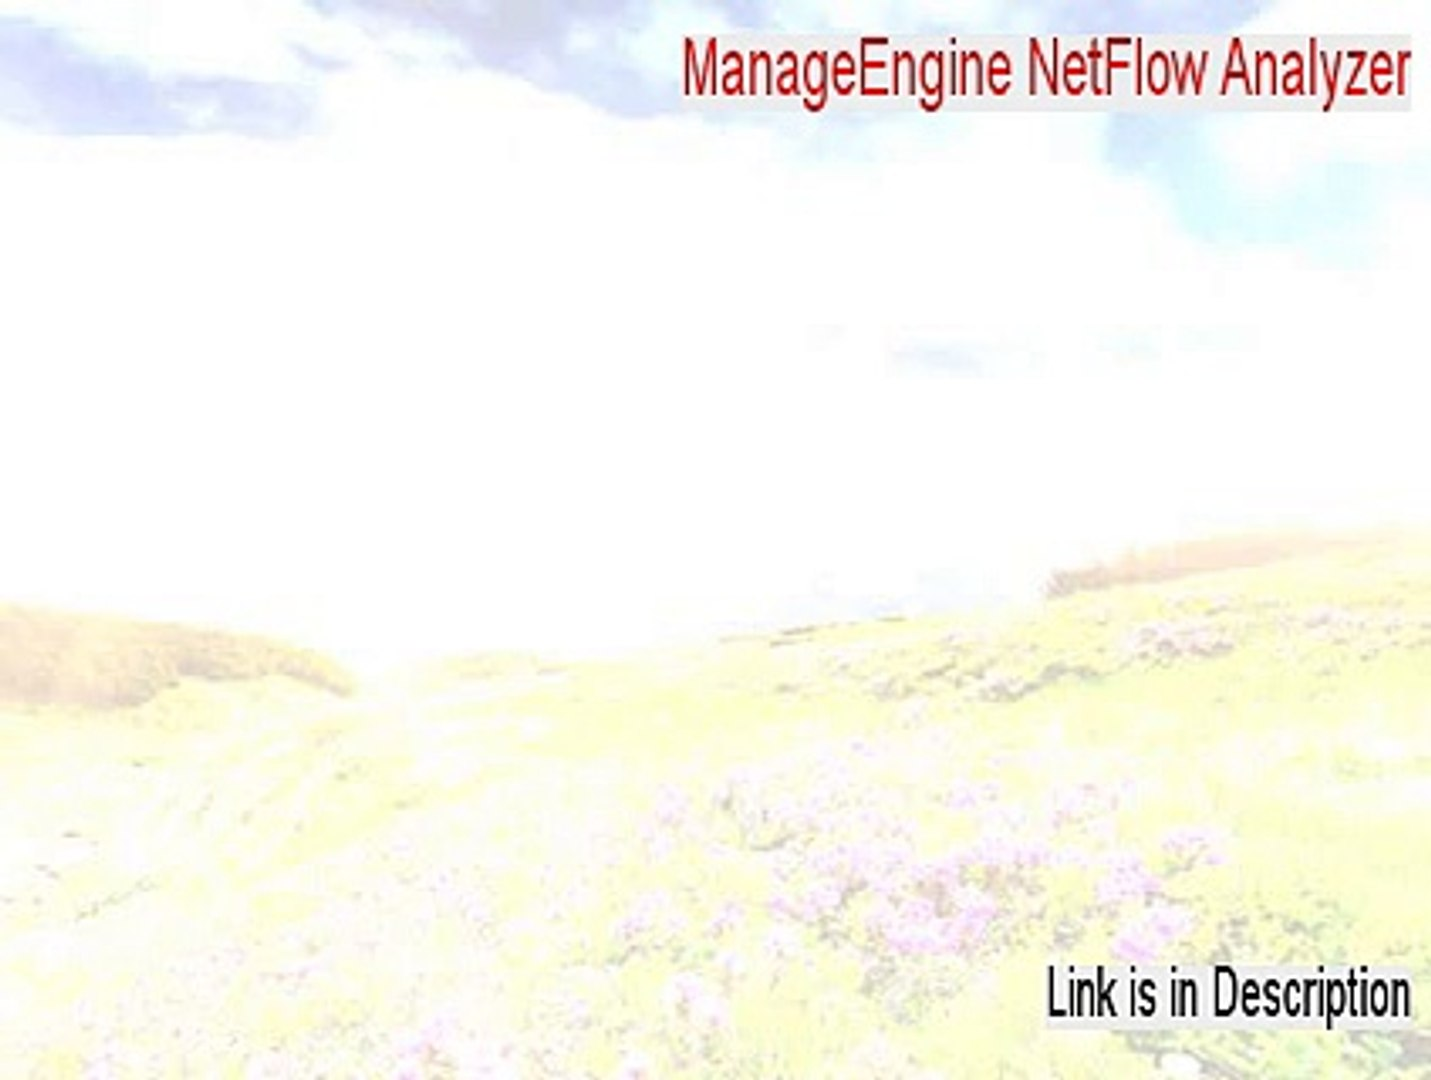 manageengine netflow analyzer 11 keygen